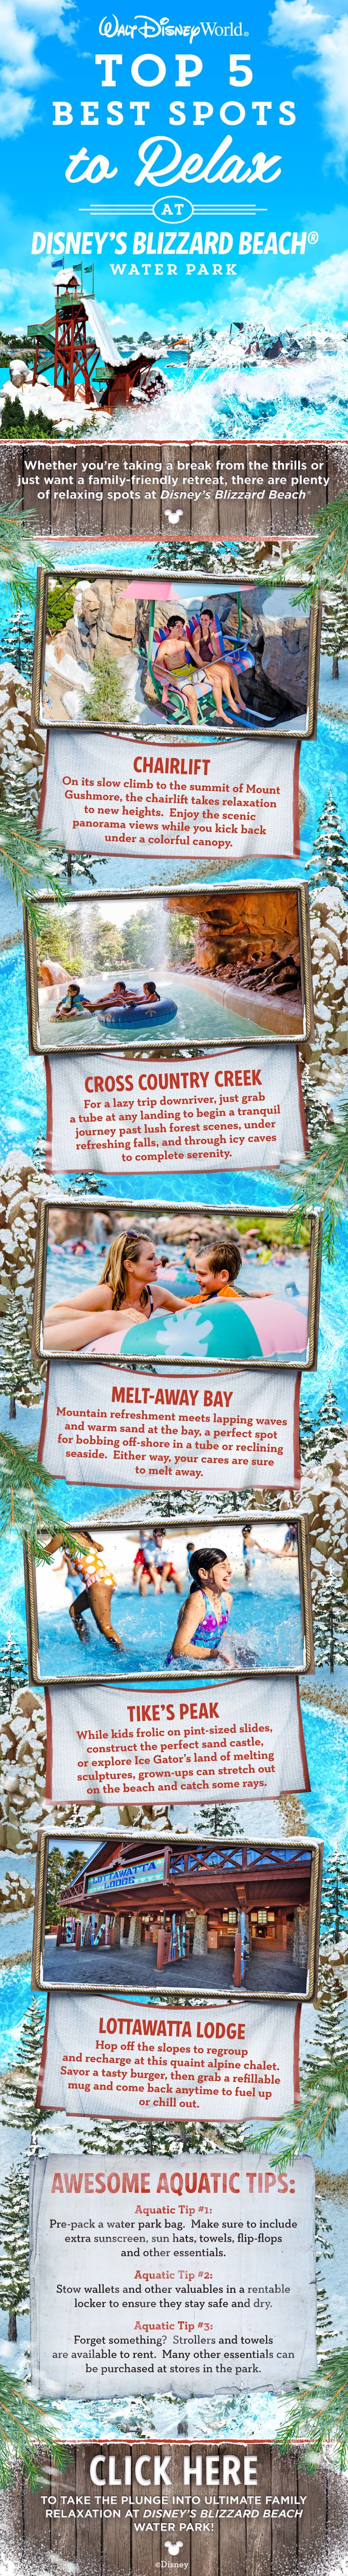 Whether you and your family are taking a break from the thrills or just want a family-friendly retreat, there are plenty of relaxing spots Disney's Blizzard Beach Water Park at Walt Disney World!